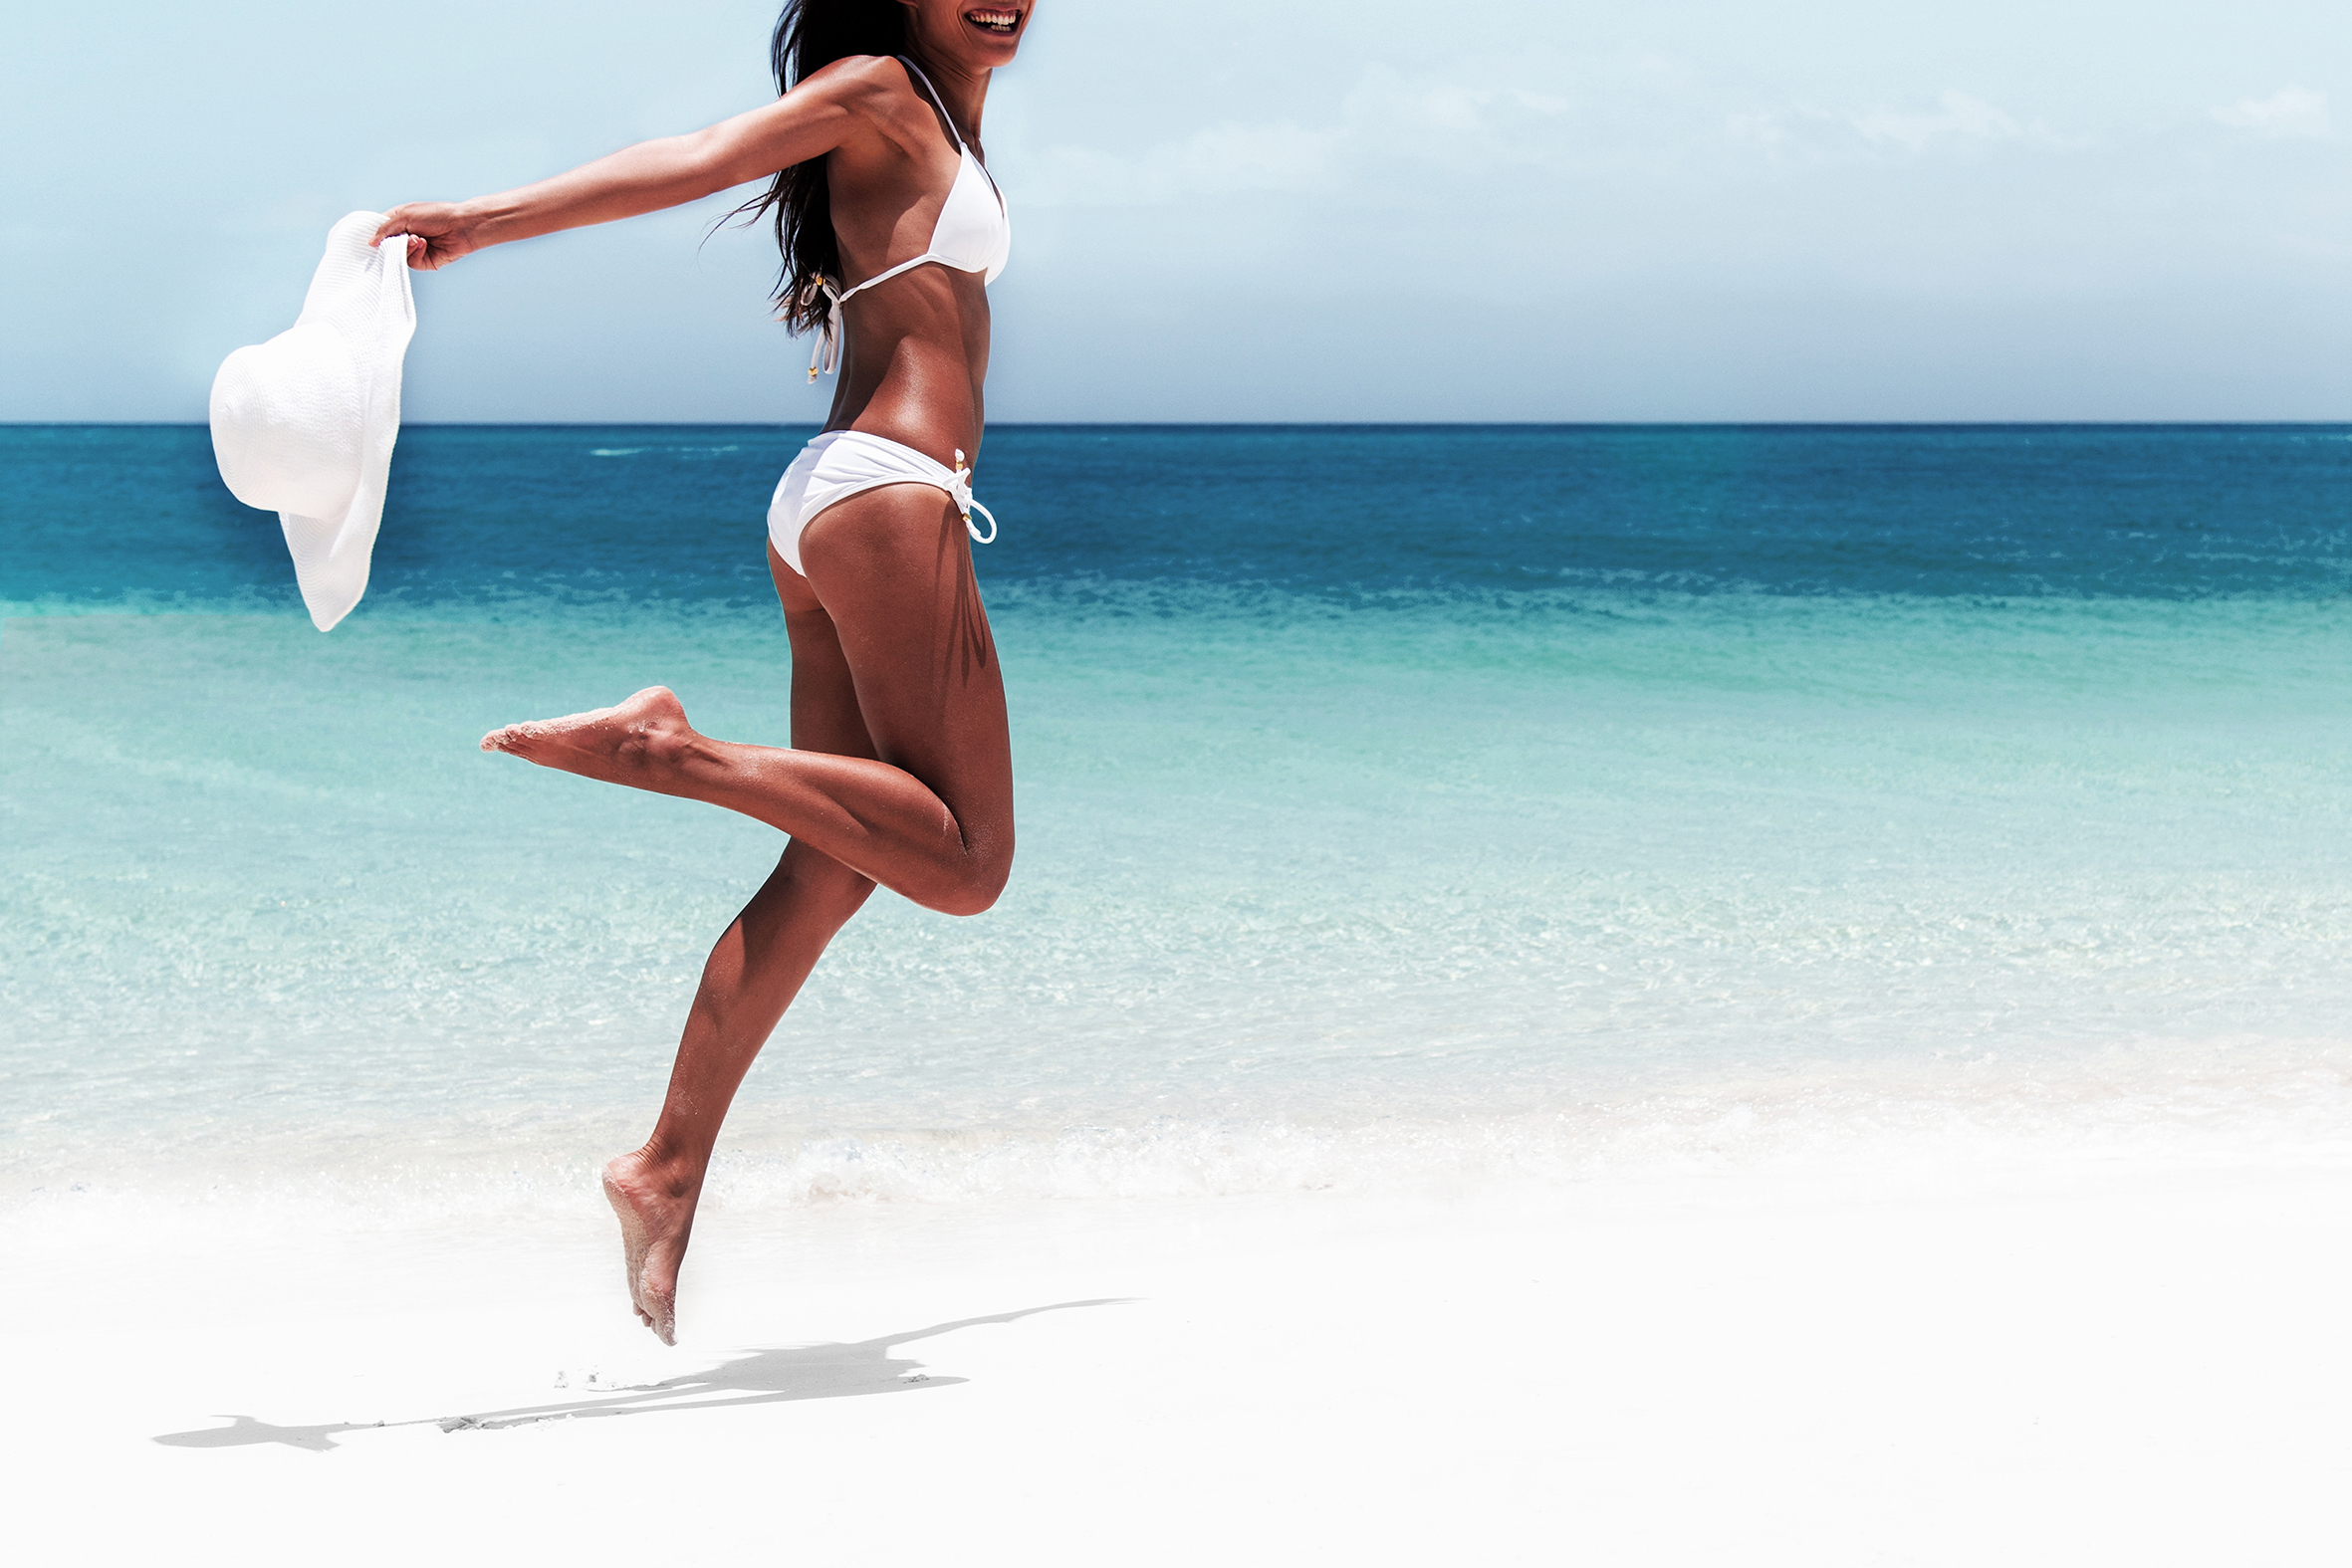 Beach Ready Bikini Body Sexy Slim Legs And Toned Thighs And Butt. Suntan Happy Woman Jumping In Freedom On White Sand With Sun Hat. Weight Loss Success Or Epilation Concept.